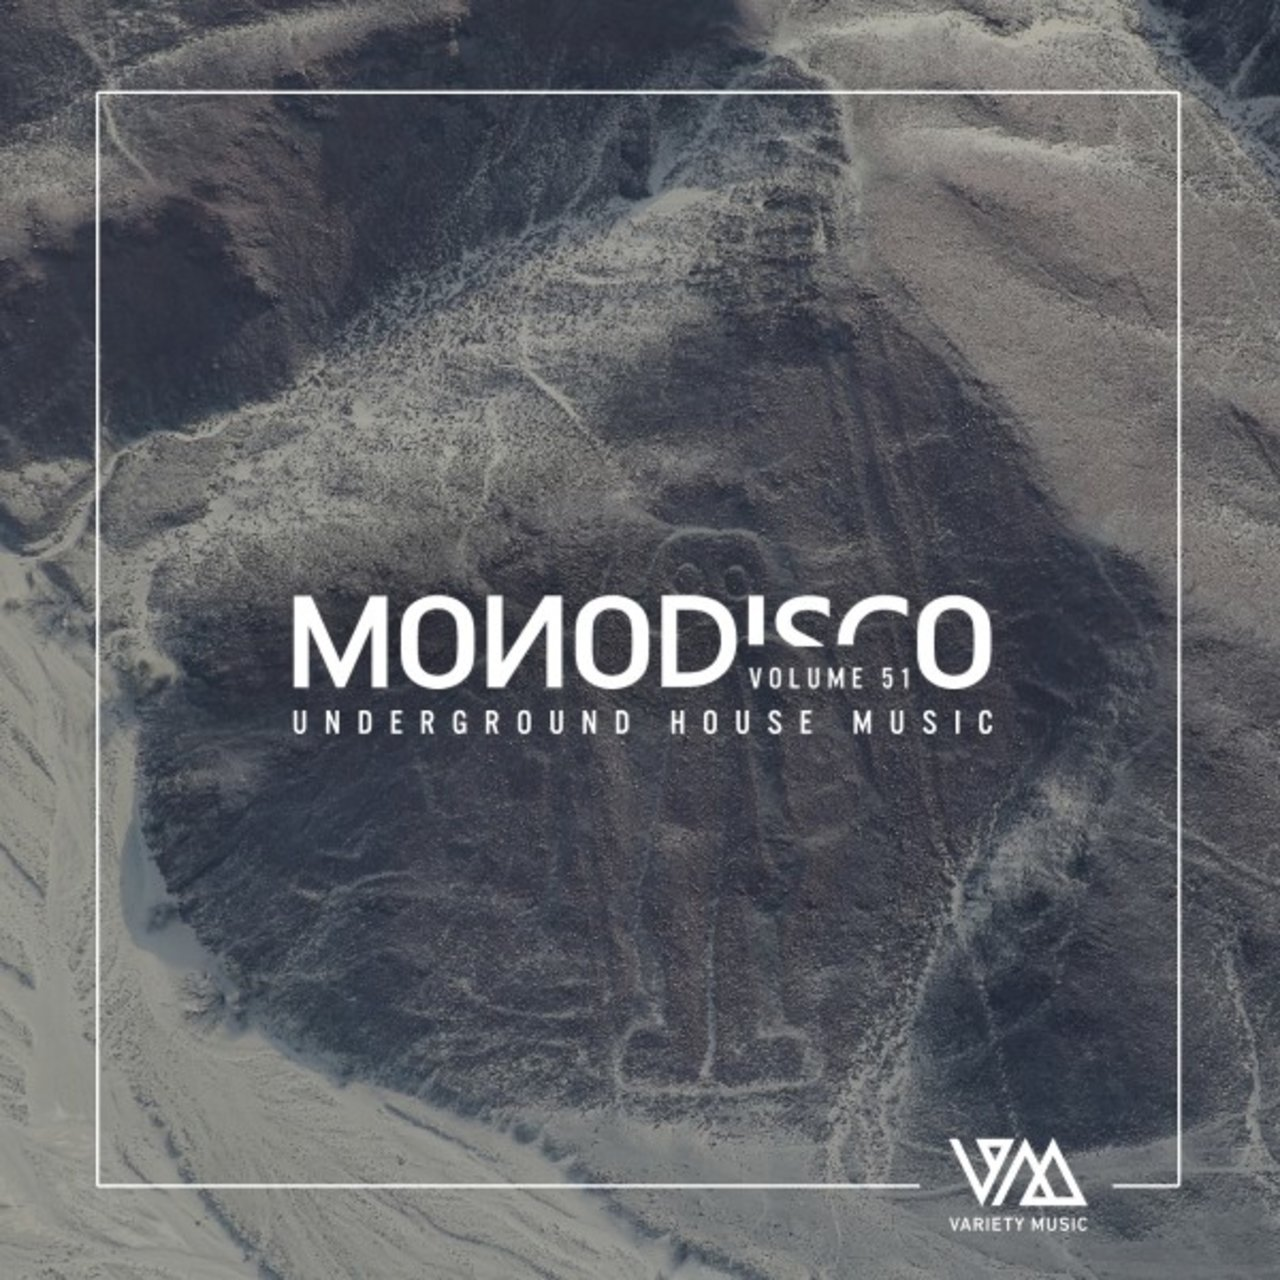 Monodisco, Vol. 51